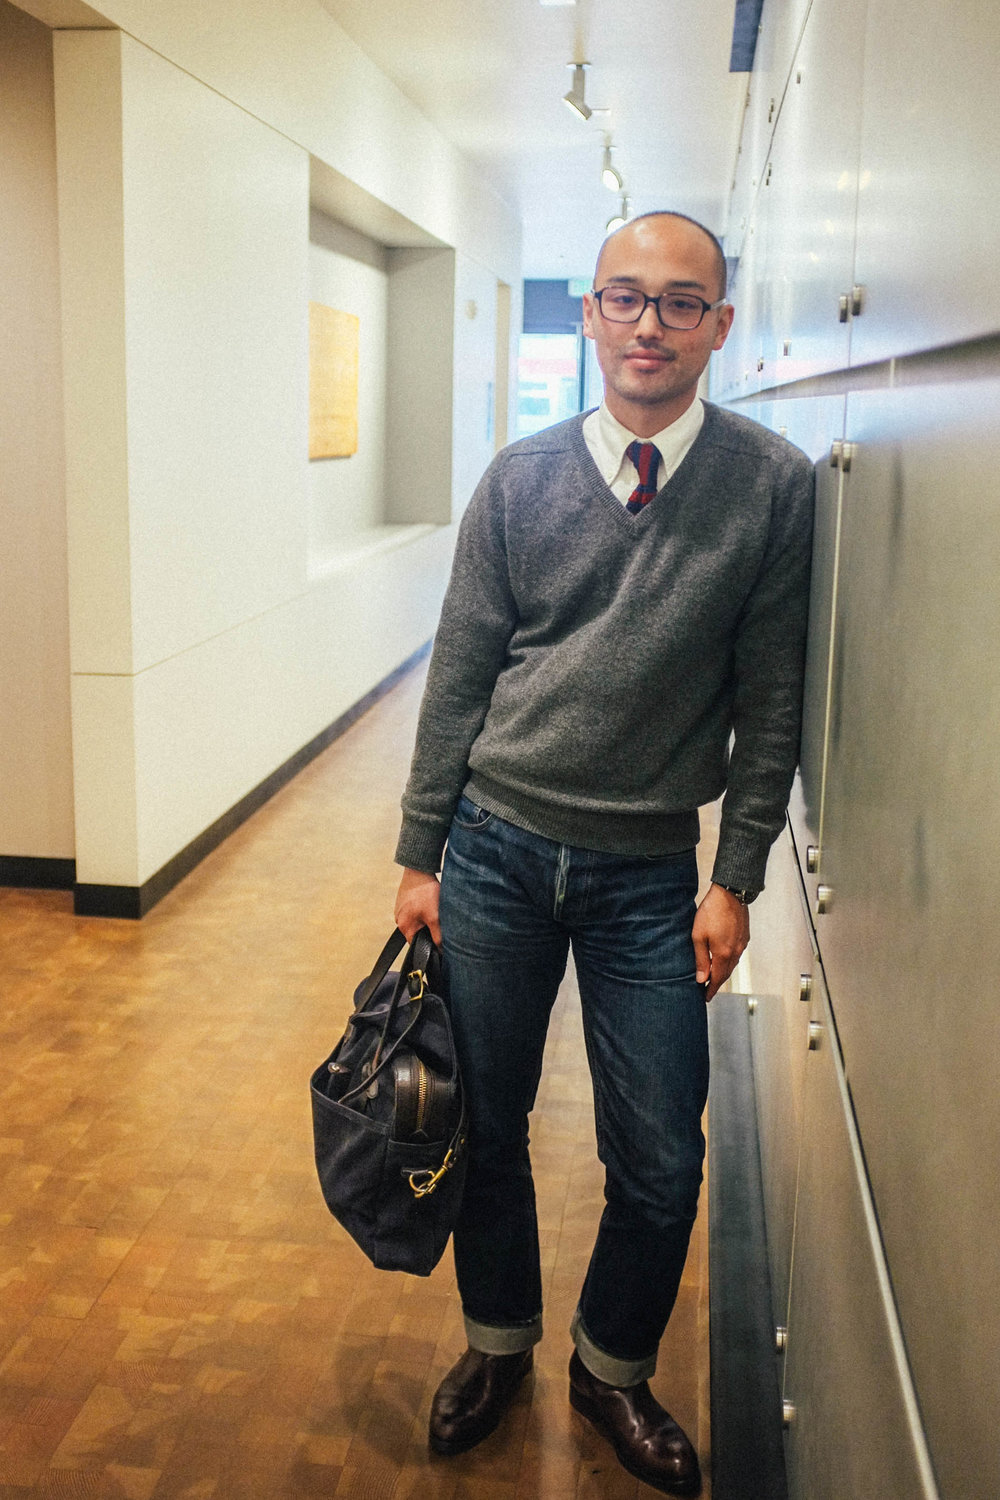 Glasses - JINS | Sweater - Scott and Charters | Shirt - Brooks Brothers | Tie - Band of Outsiders | Jeans - 3Sixteen | Boots - Carmina Shoemaker | Briefcase - Filson